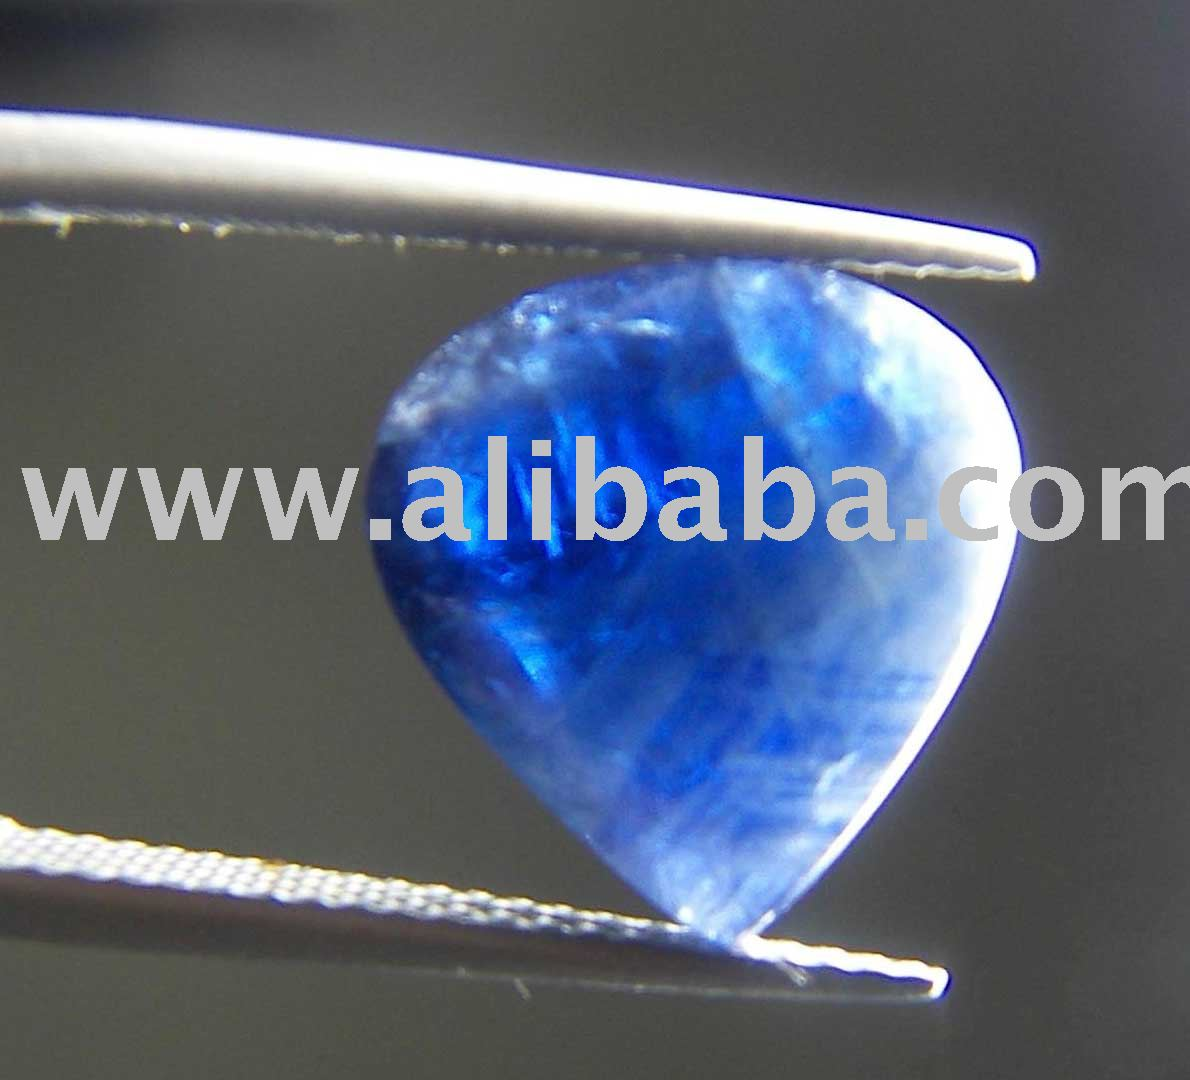 info blue jewelry information fancy cashmere gemstone gem large sapphire gemselect